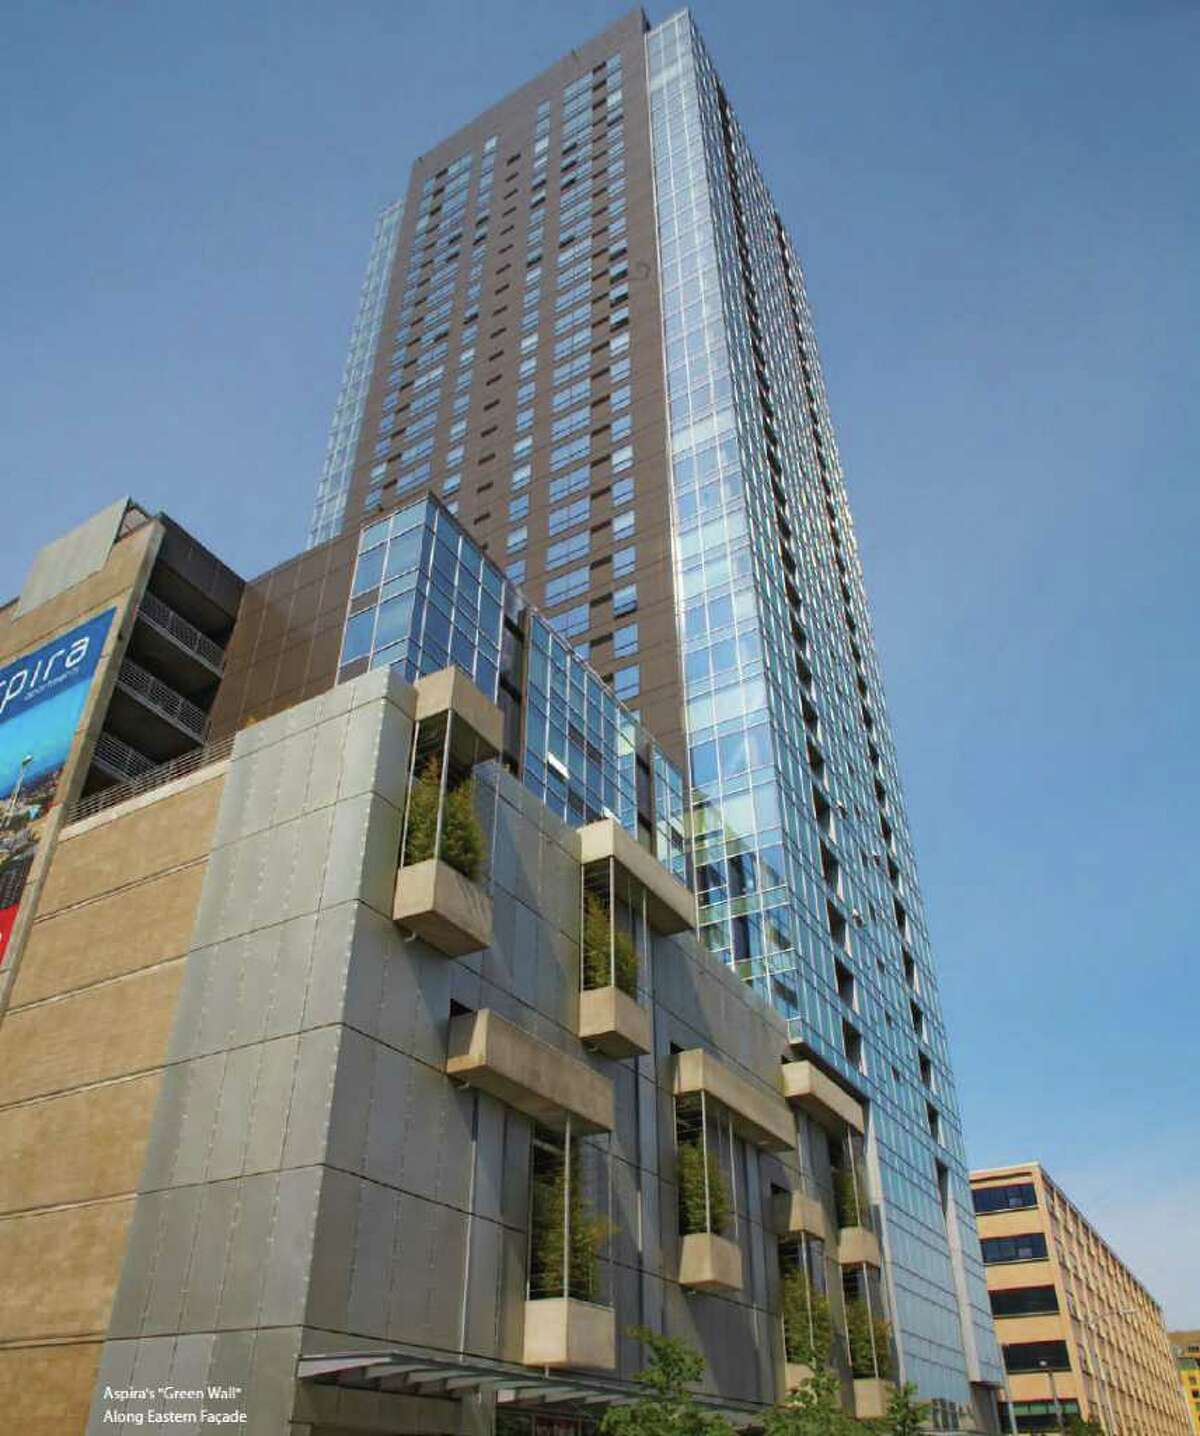 The developers of Aspira, a 37-story, 324-unit apartment building at 1823 Terry Ave., just put the tower up for sale. The tower, completed last year, aims to appeal to young professionals.